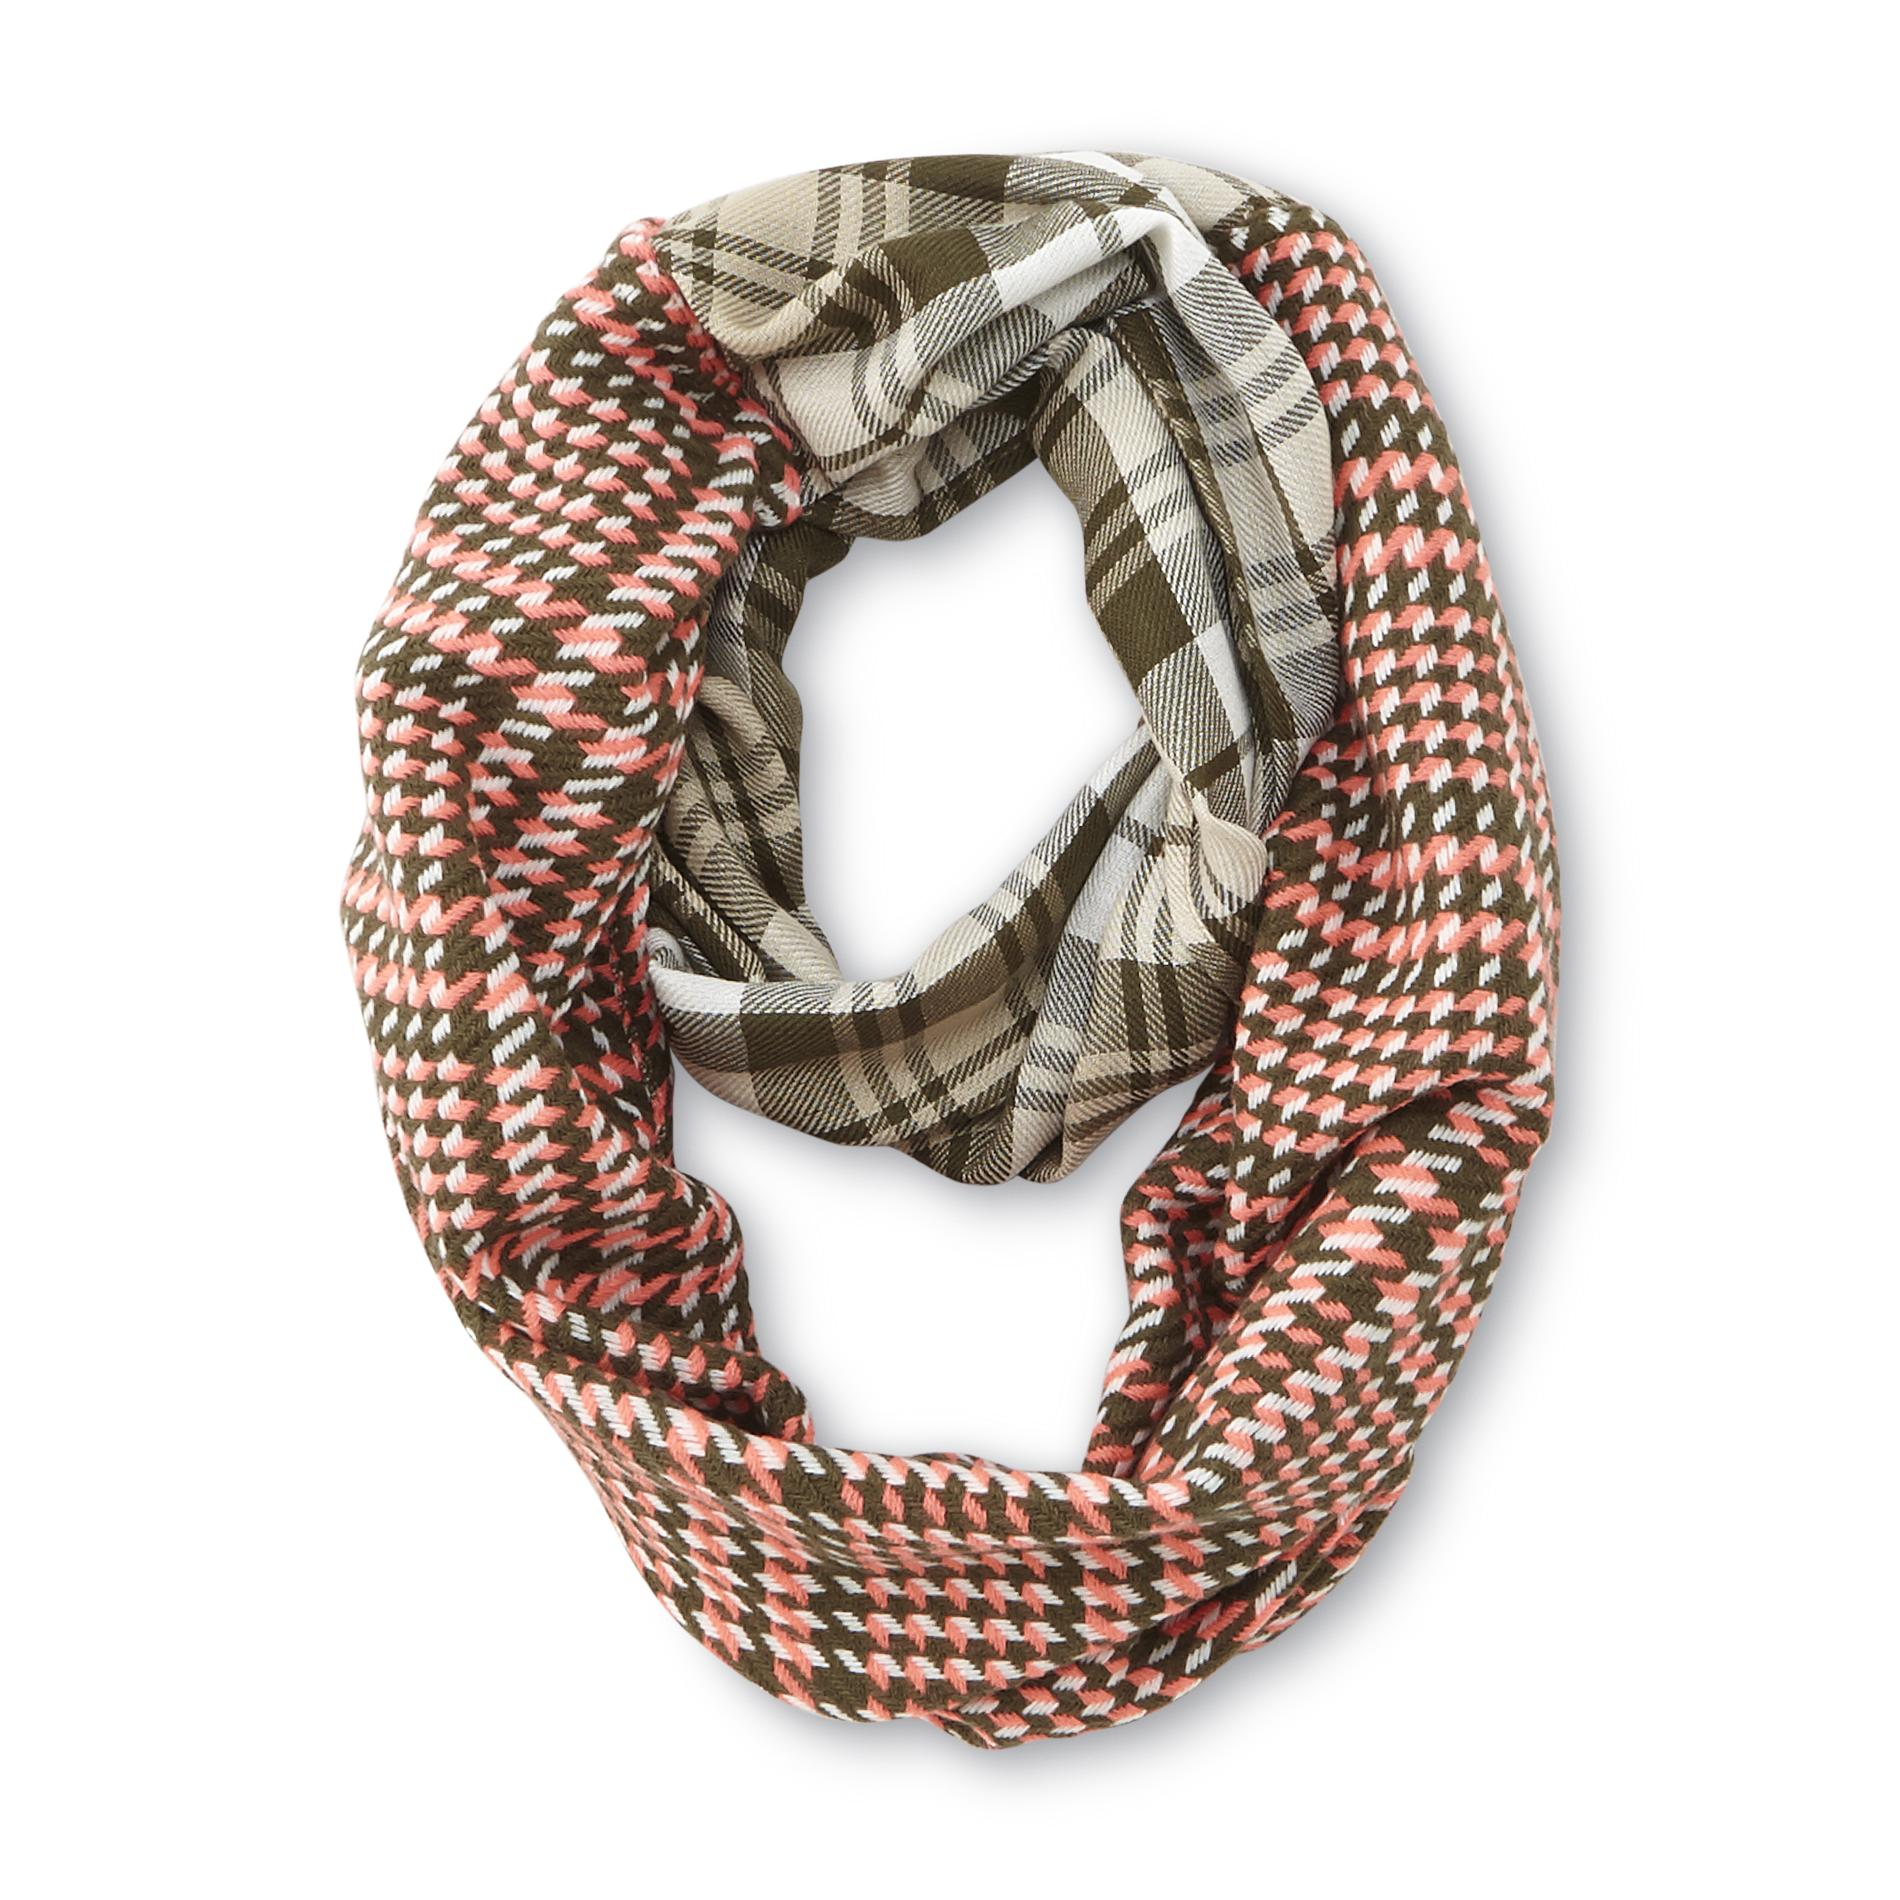 Joe Boxer Women's Woven Infinity Scarf - Dual Plaid Pattern